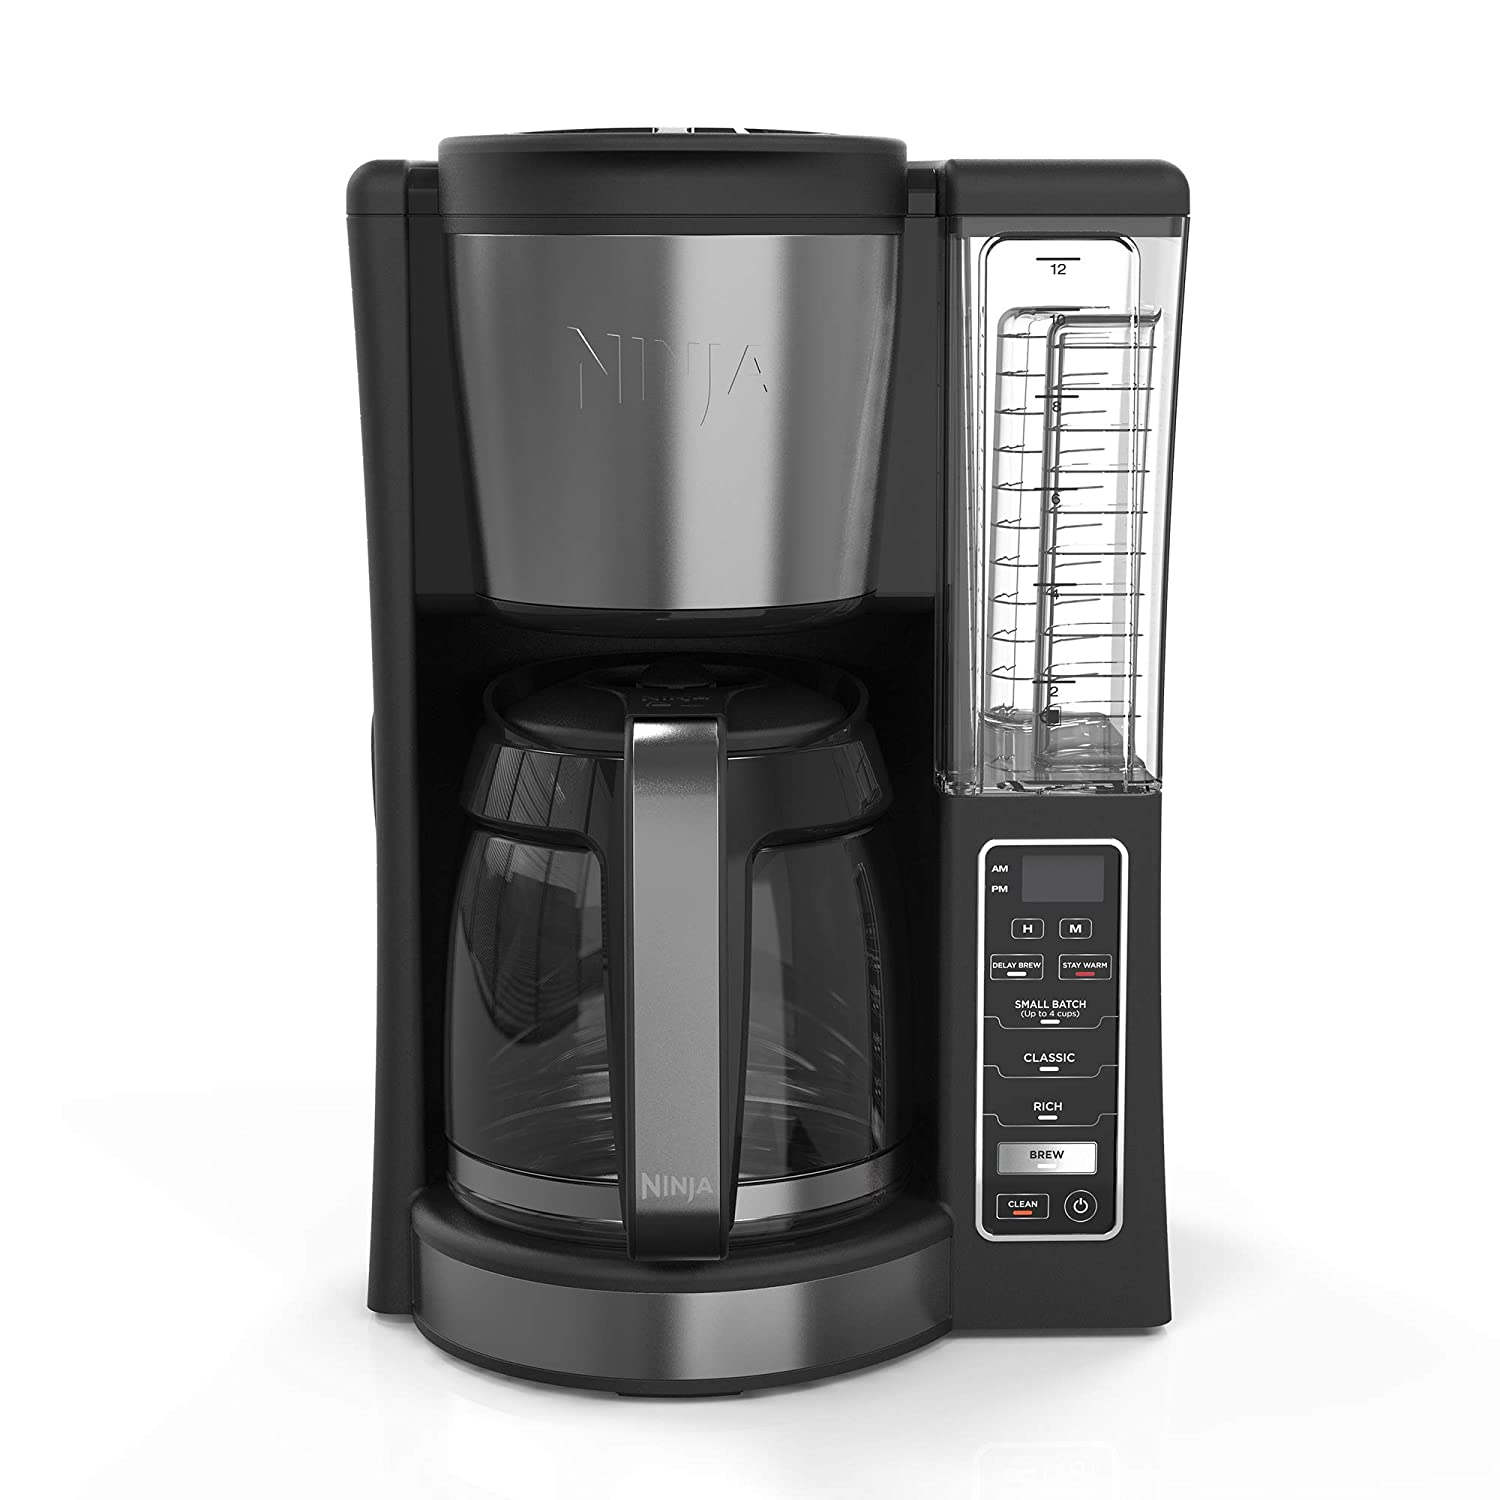 Ninja CE200 12 Cup Programmable Coffee Maker with 60 Ounce Reservoir and Thermal Flavor Extraction, Black (Certified Refurbished)